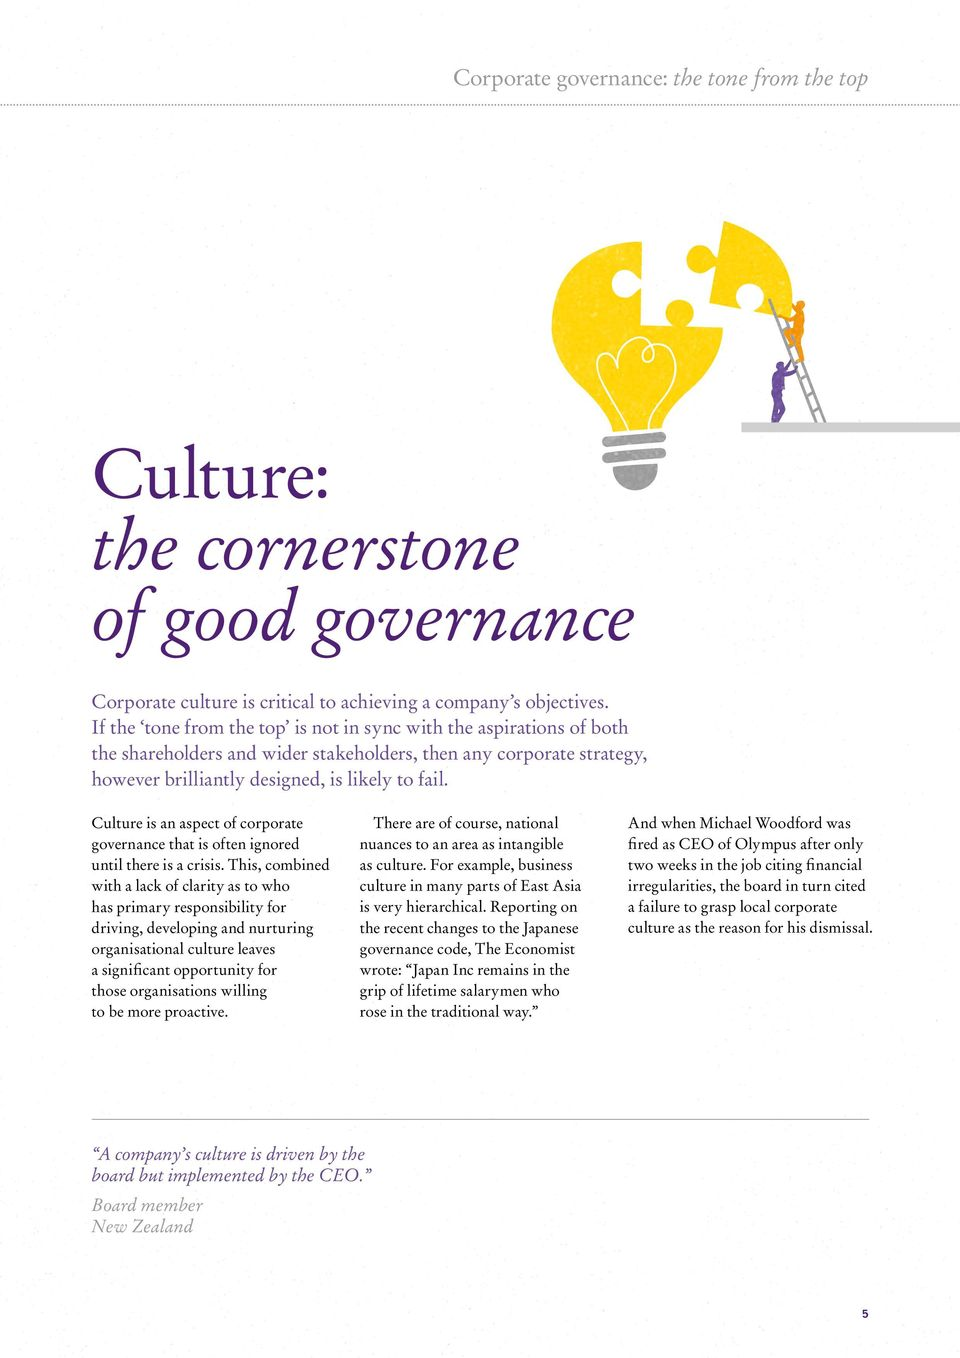 Culture is an aspect of corporate governance that is often ignored until there is a crisis.